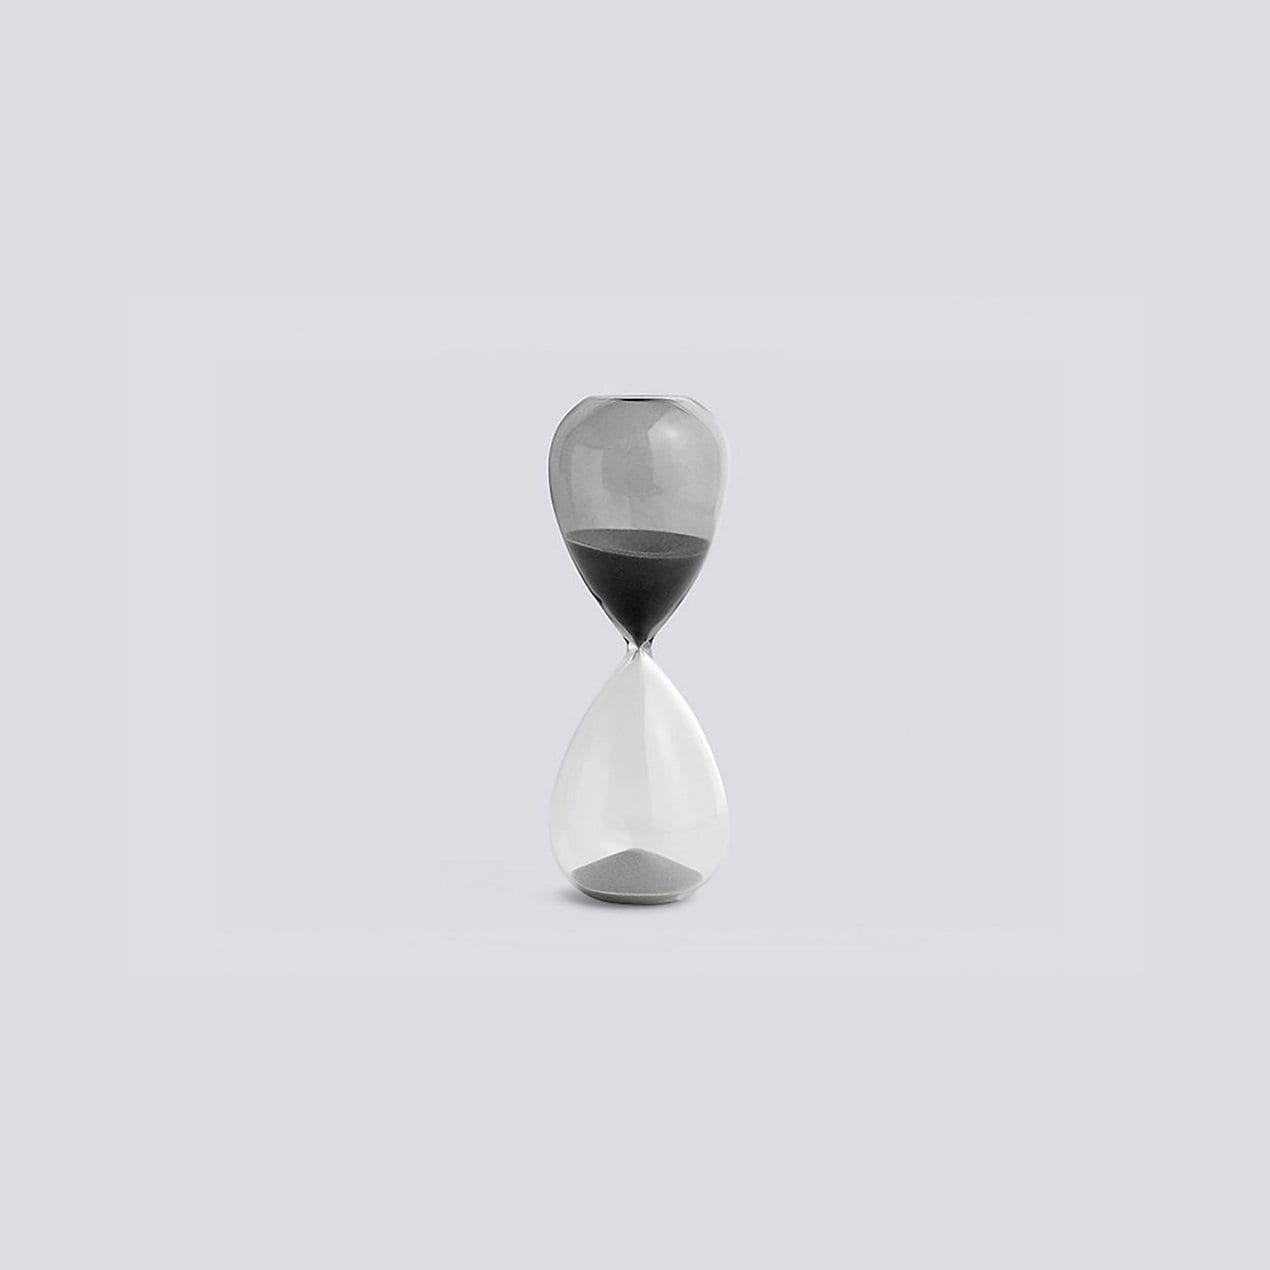 Time Hourglass, 30 Minutes / Neighborhood Goods